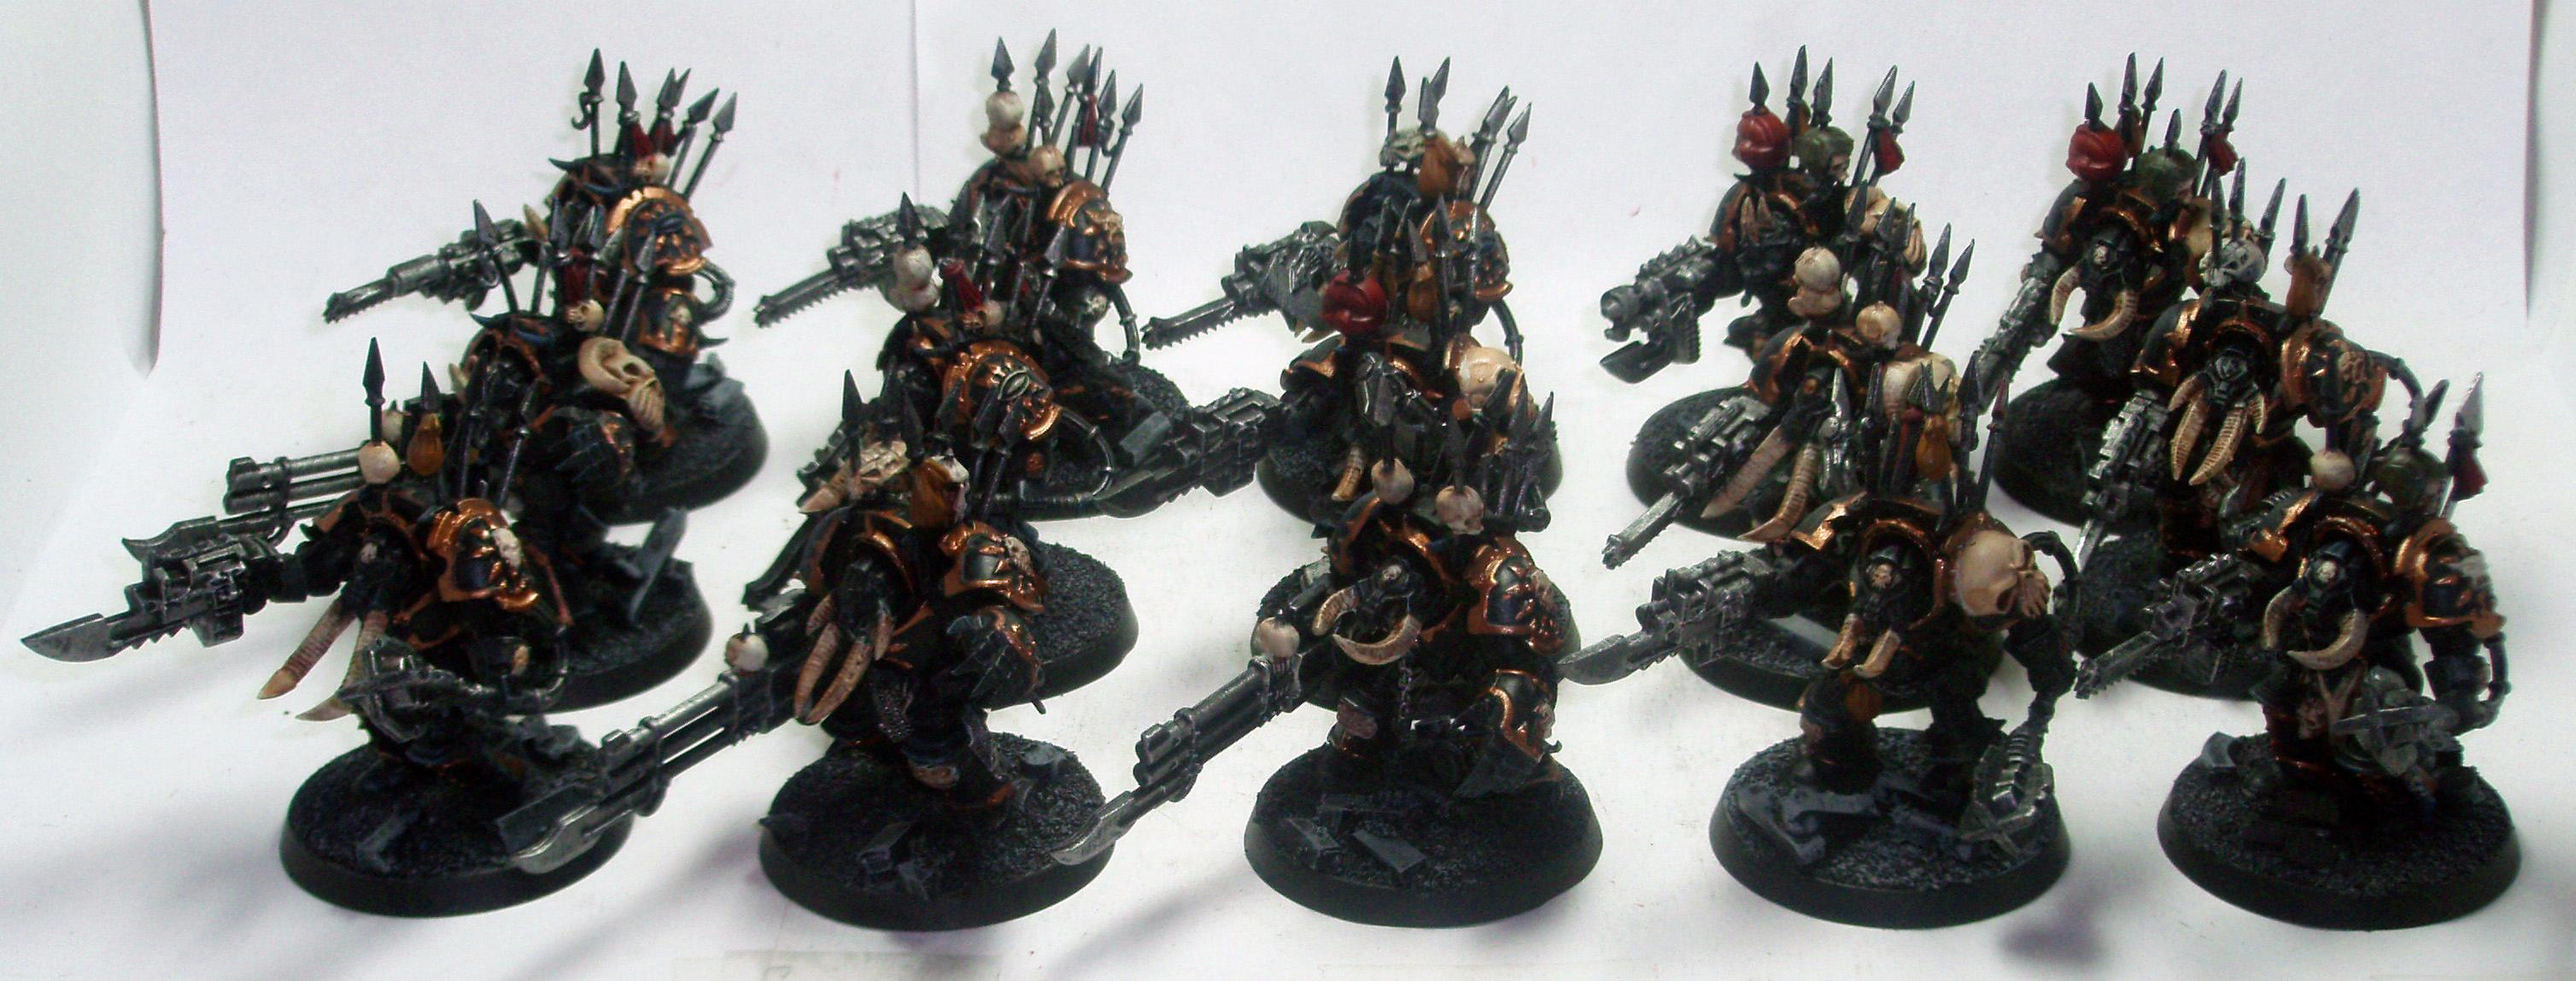 Bk Army Painting, Commission, Painting Service